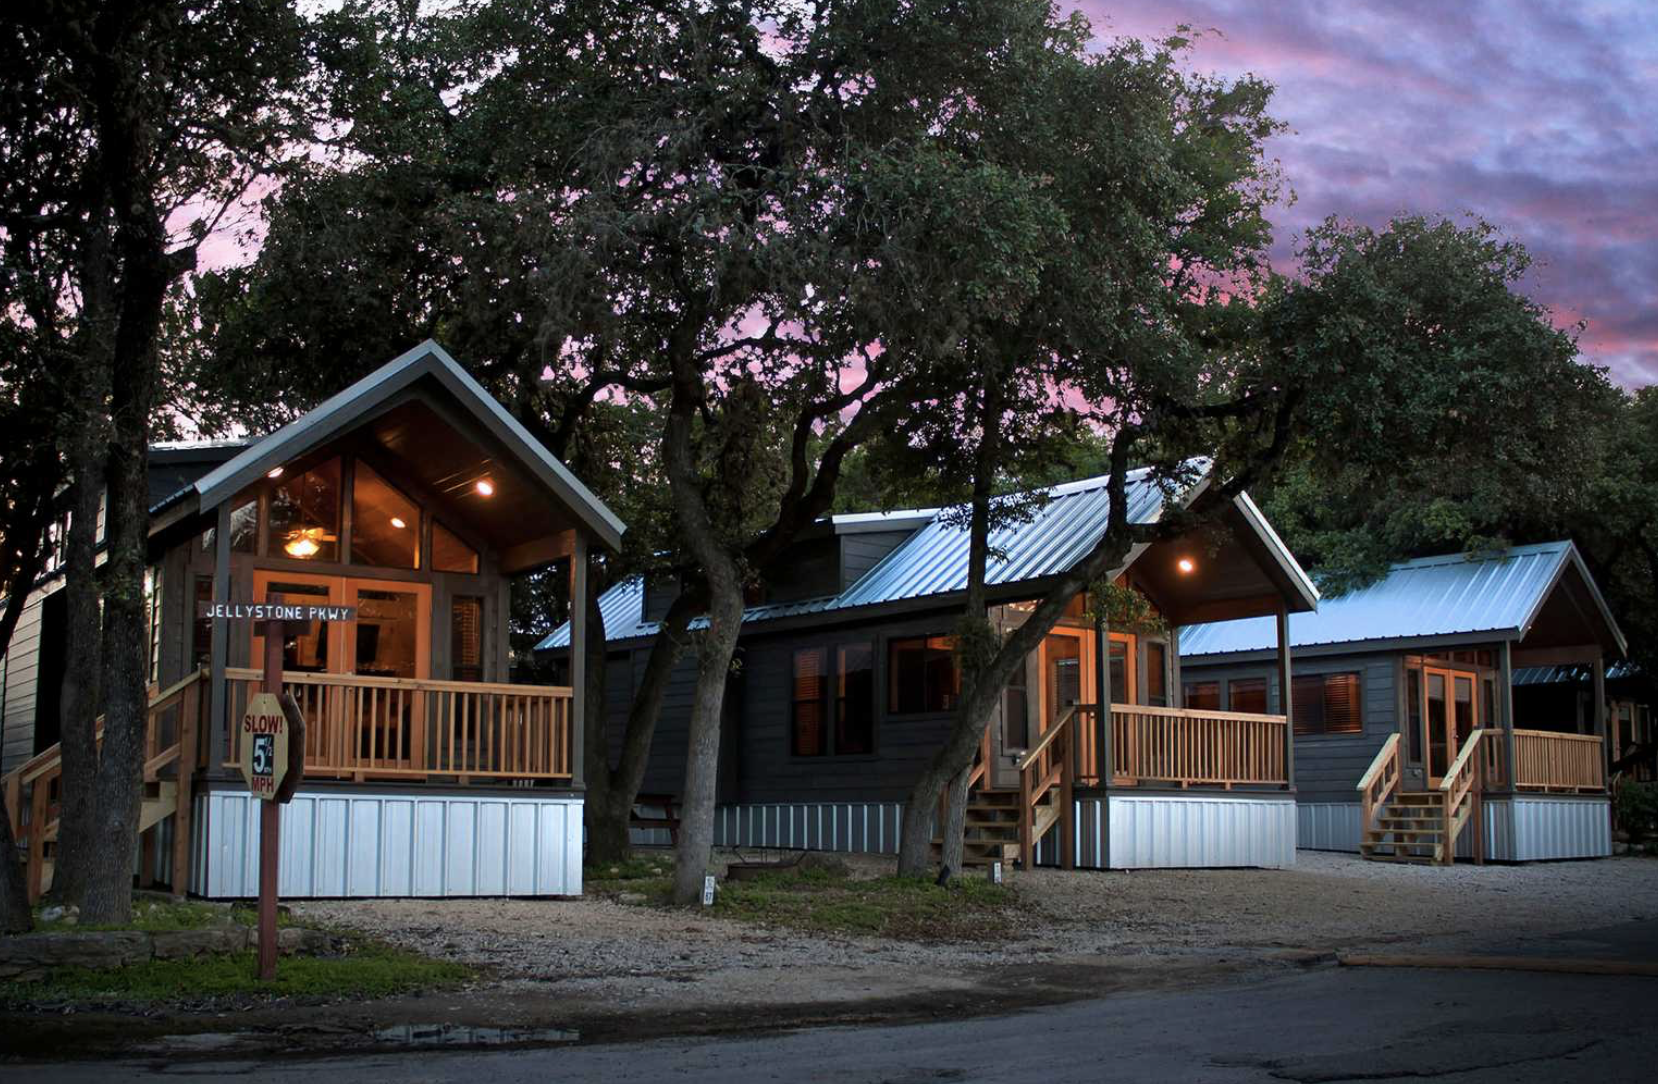 Cabins at sunset with purple sky surrounded by trees